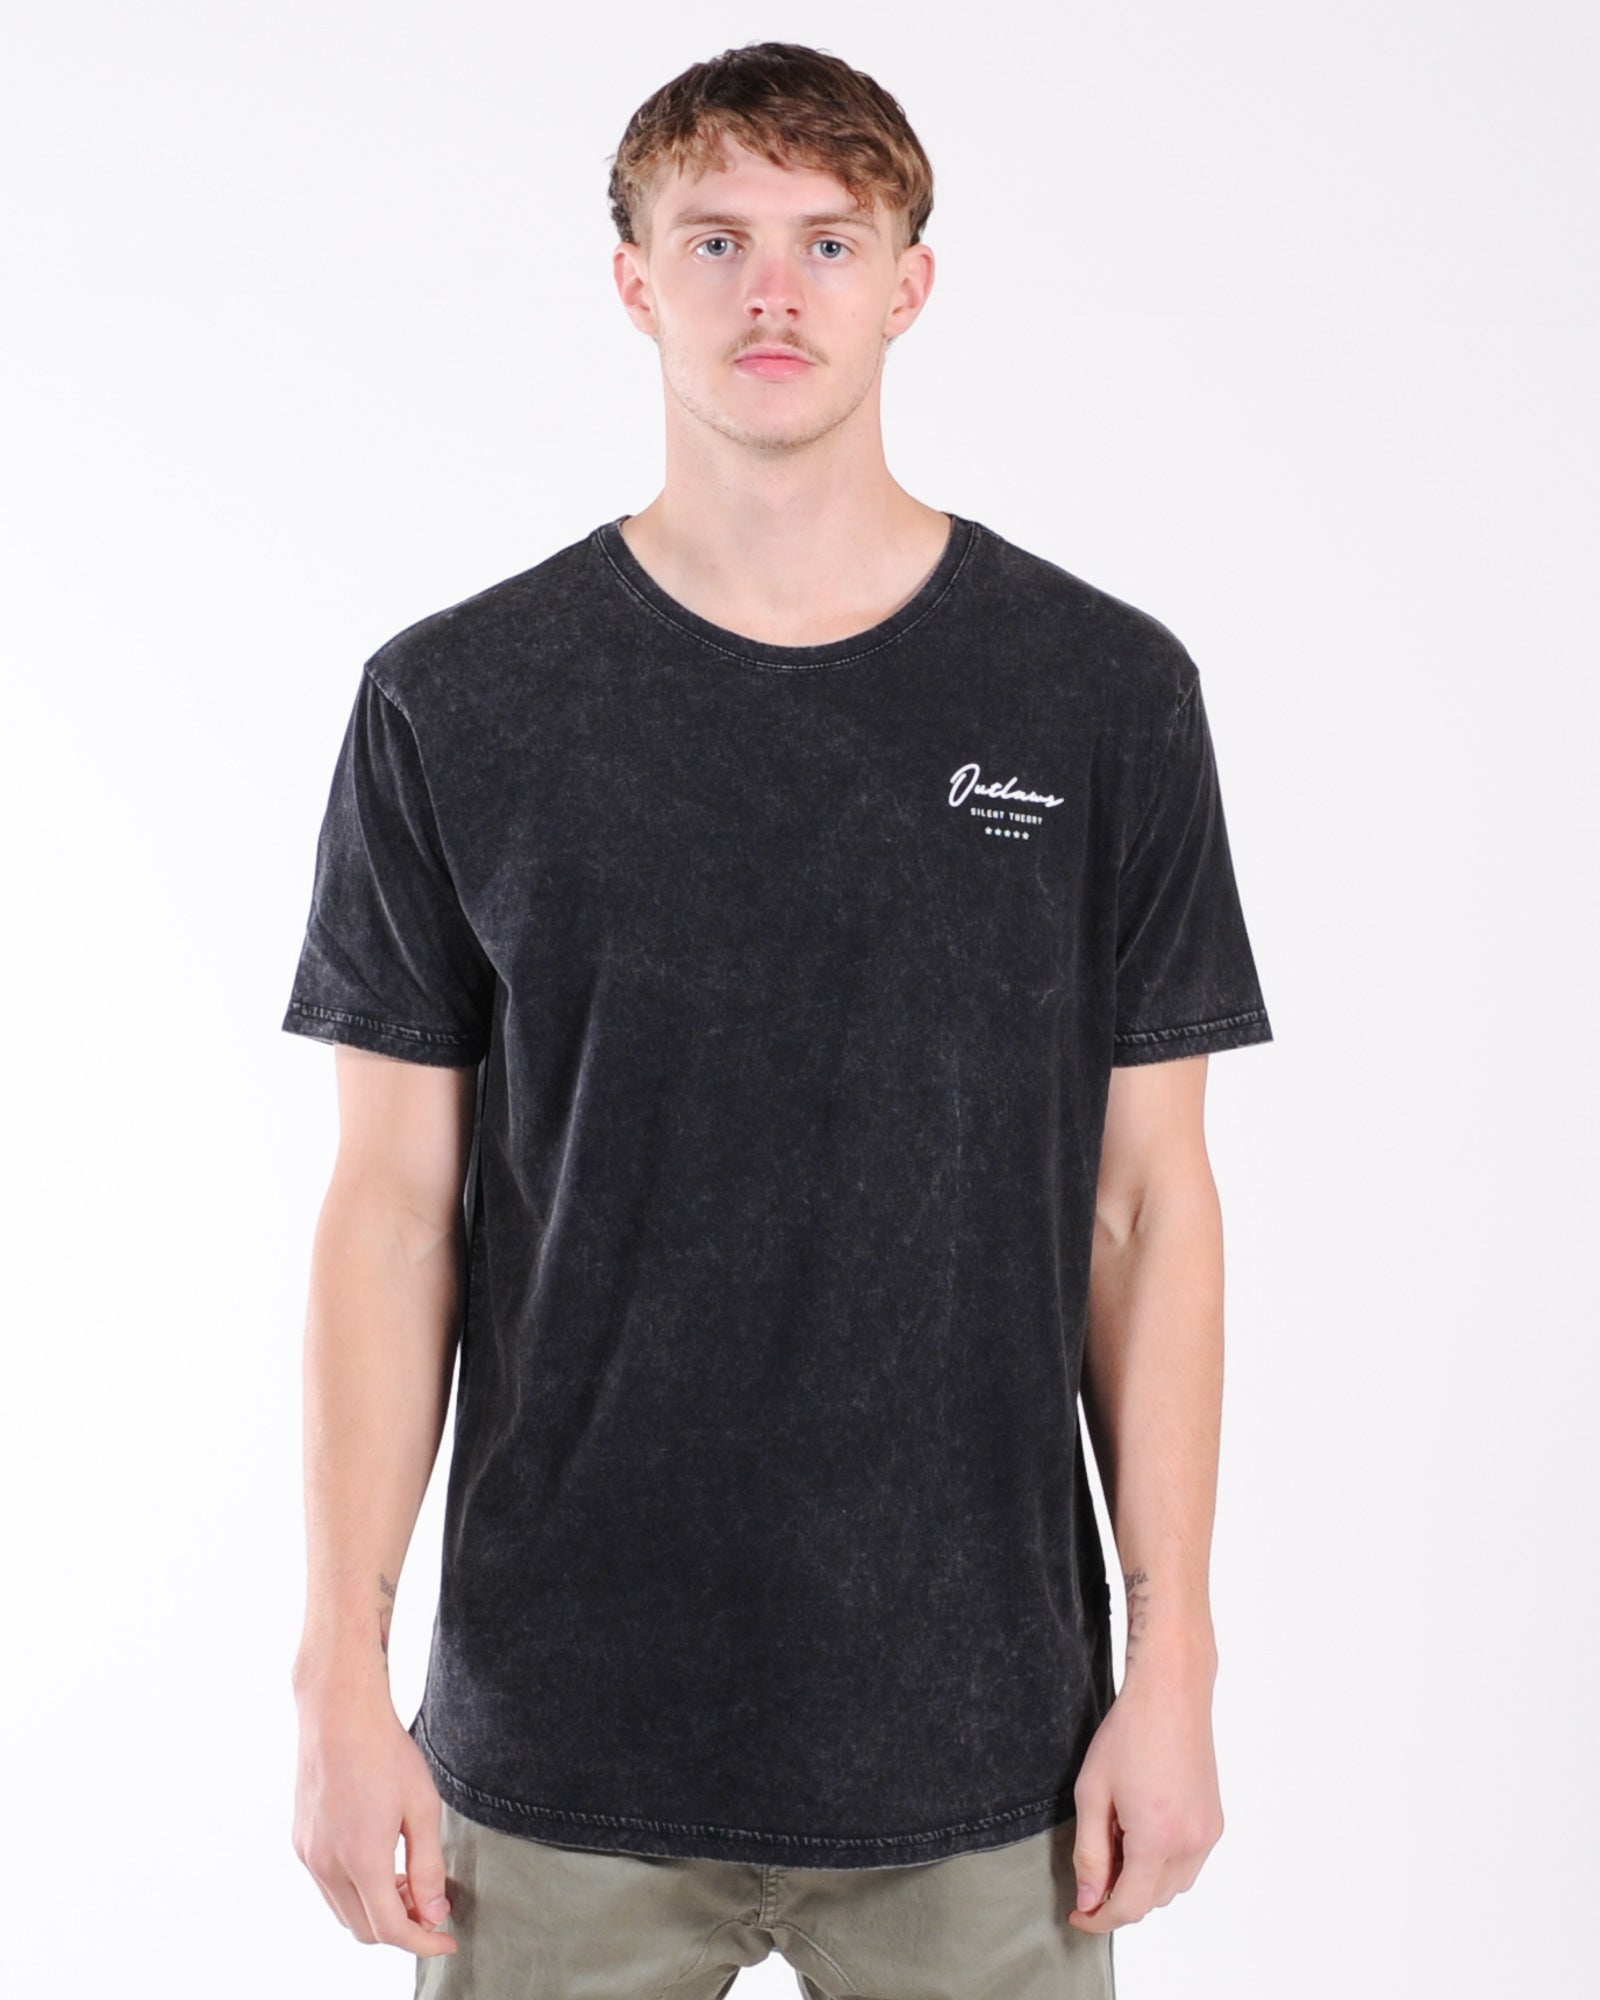 Silent Theory Outlaw Script Tee - Washed Black